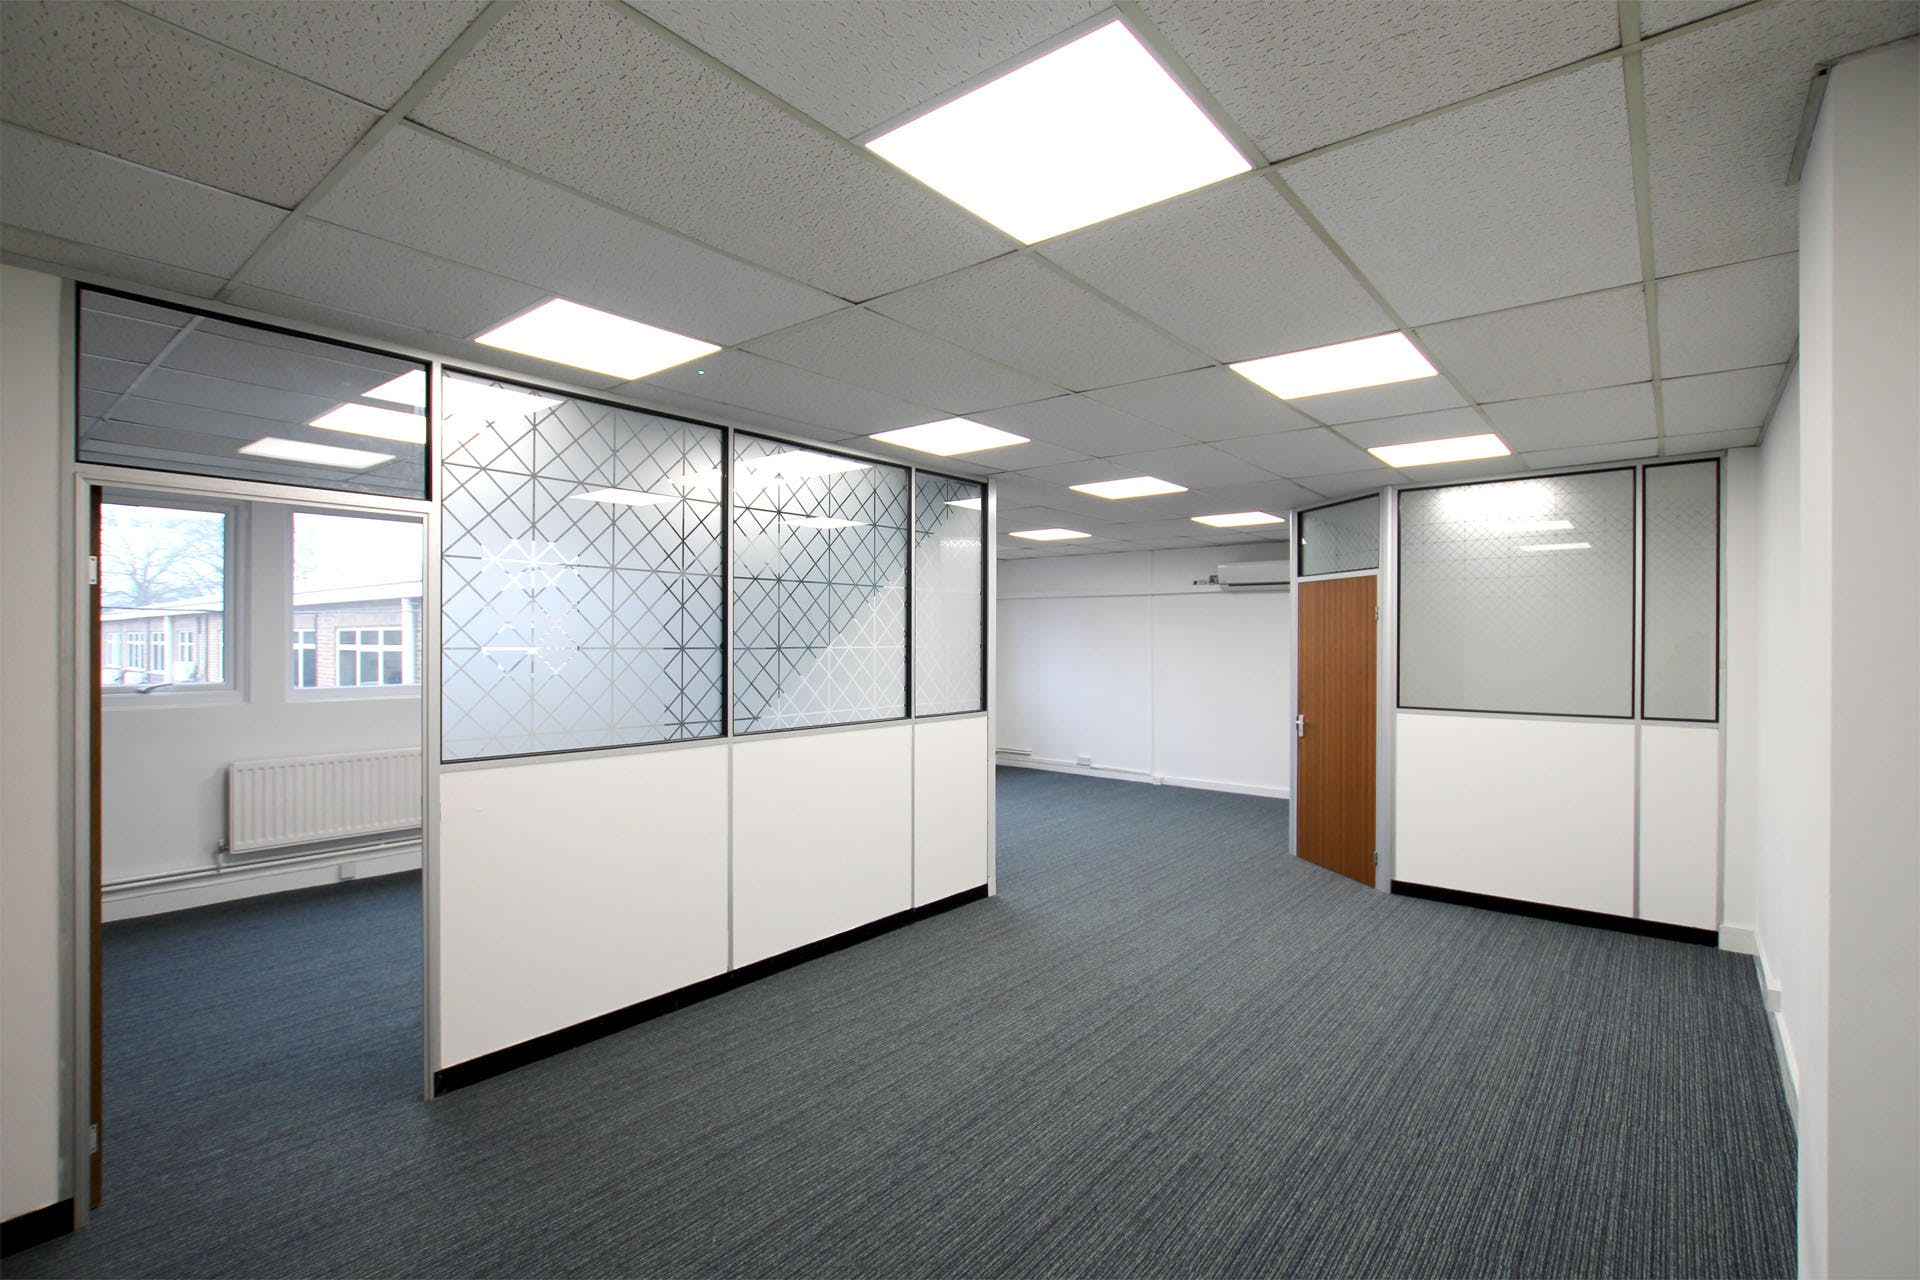 Lansbury Business Estate, 102 Lower Guildford Road, Knaphill, Woking, Office To Let - LBE-unit-211_6988-1920.jpg